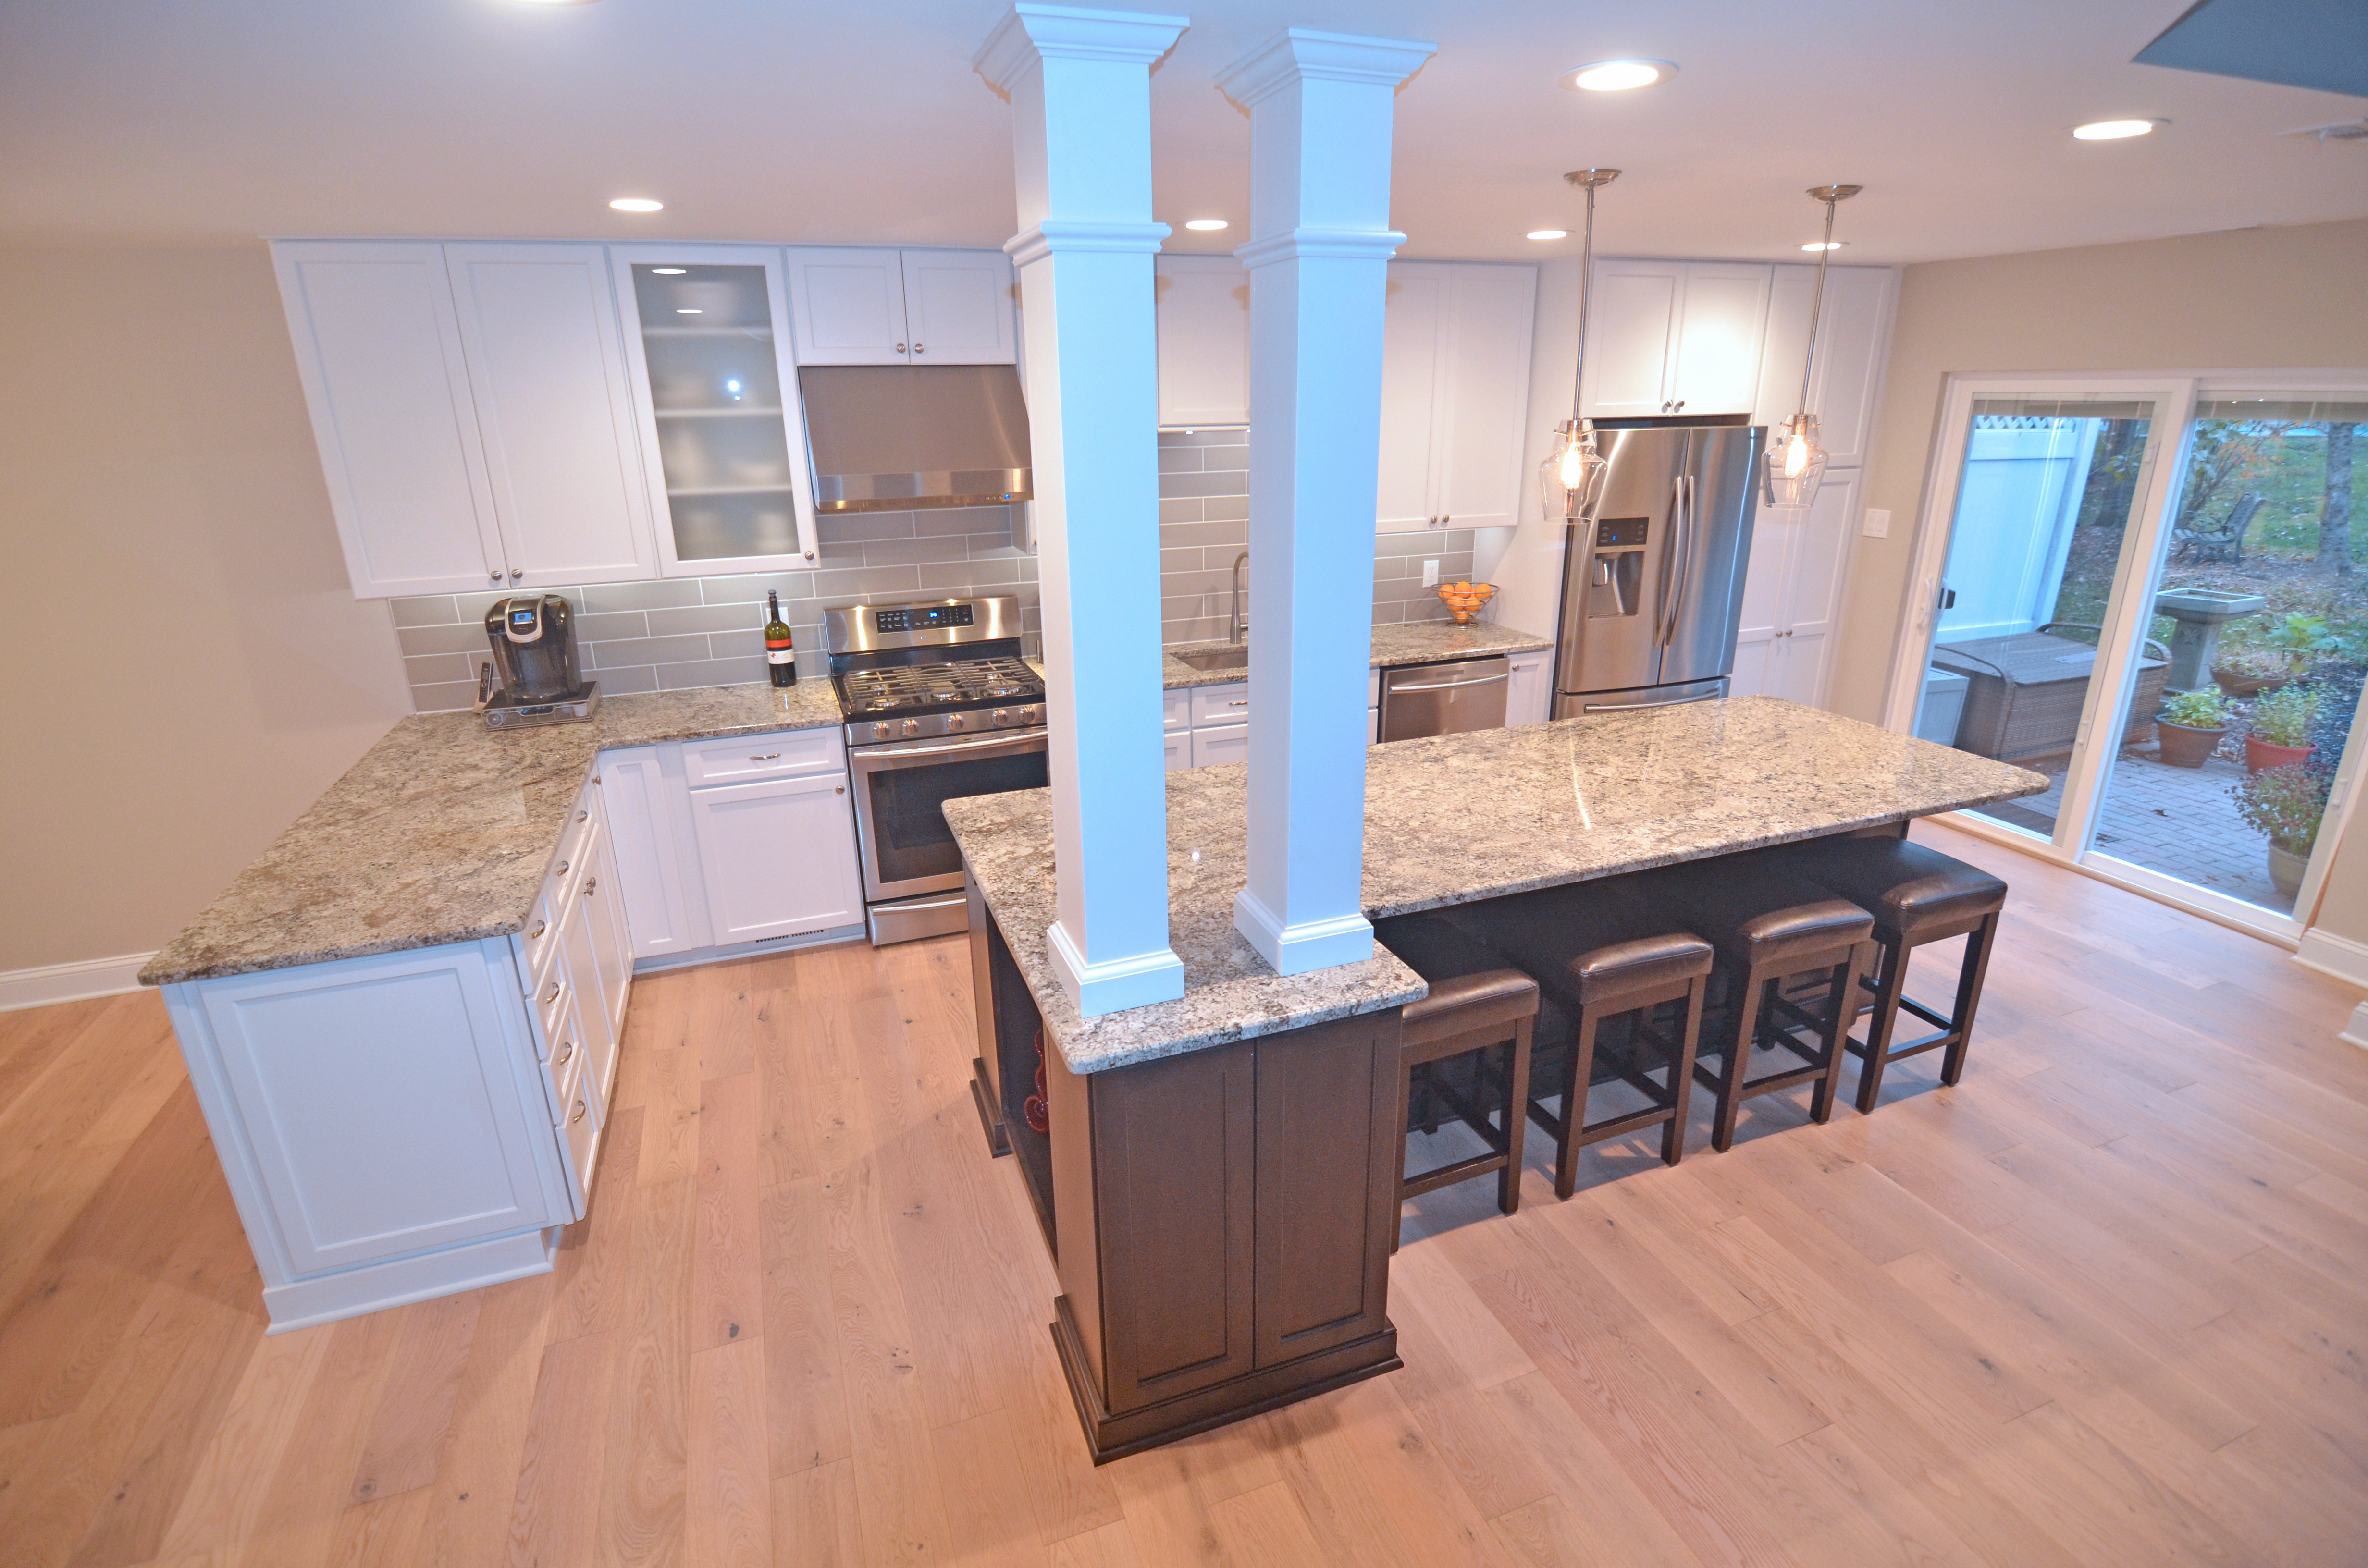 exceptional Kitchen Remodel Must Haves #3: amazing kitchen construction